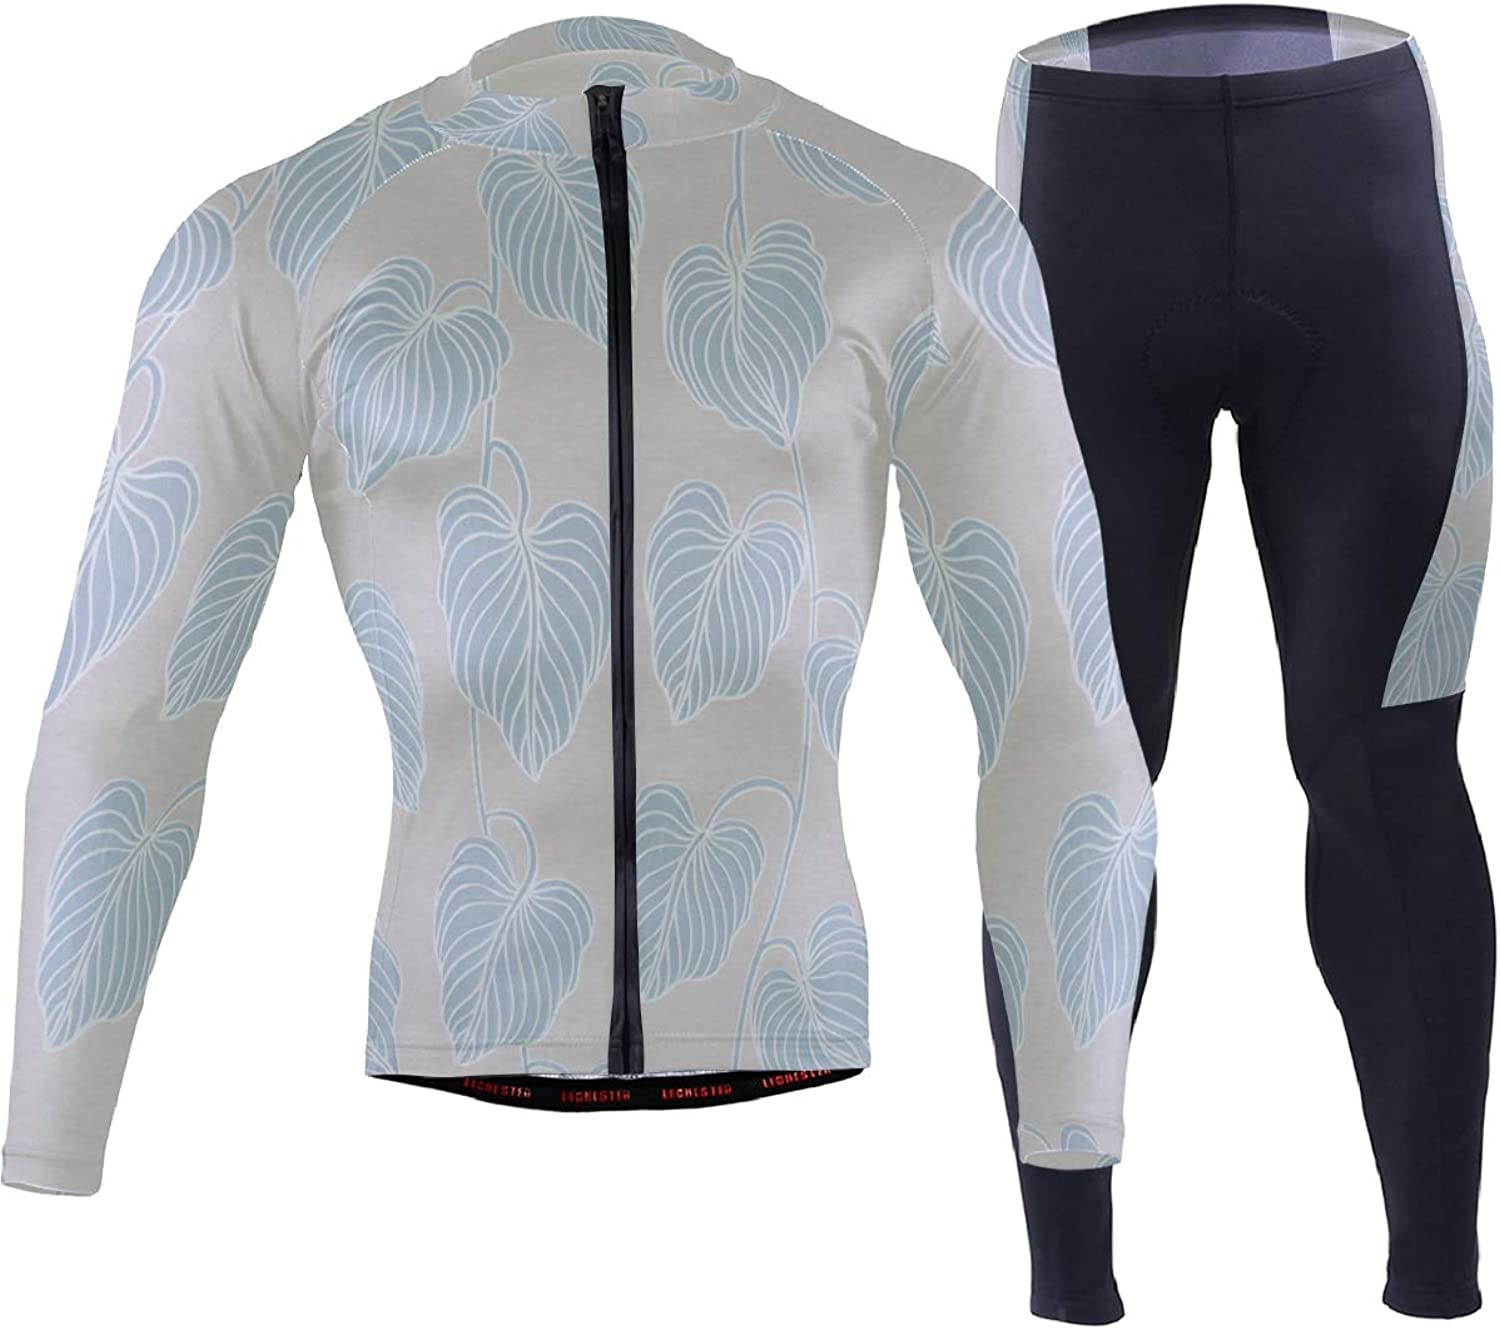 FAJRO Big Leave Cirrus Pattern Sportswear Suit Bike Outfit Set Breathable Quick Dry 3D Padded Pants